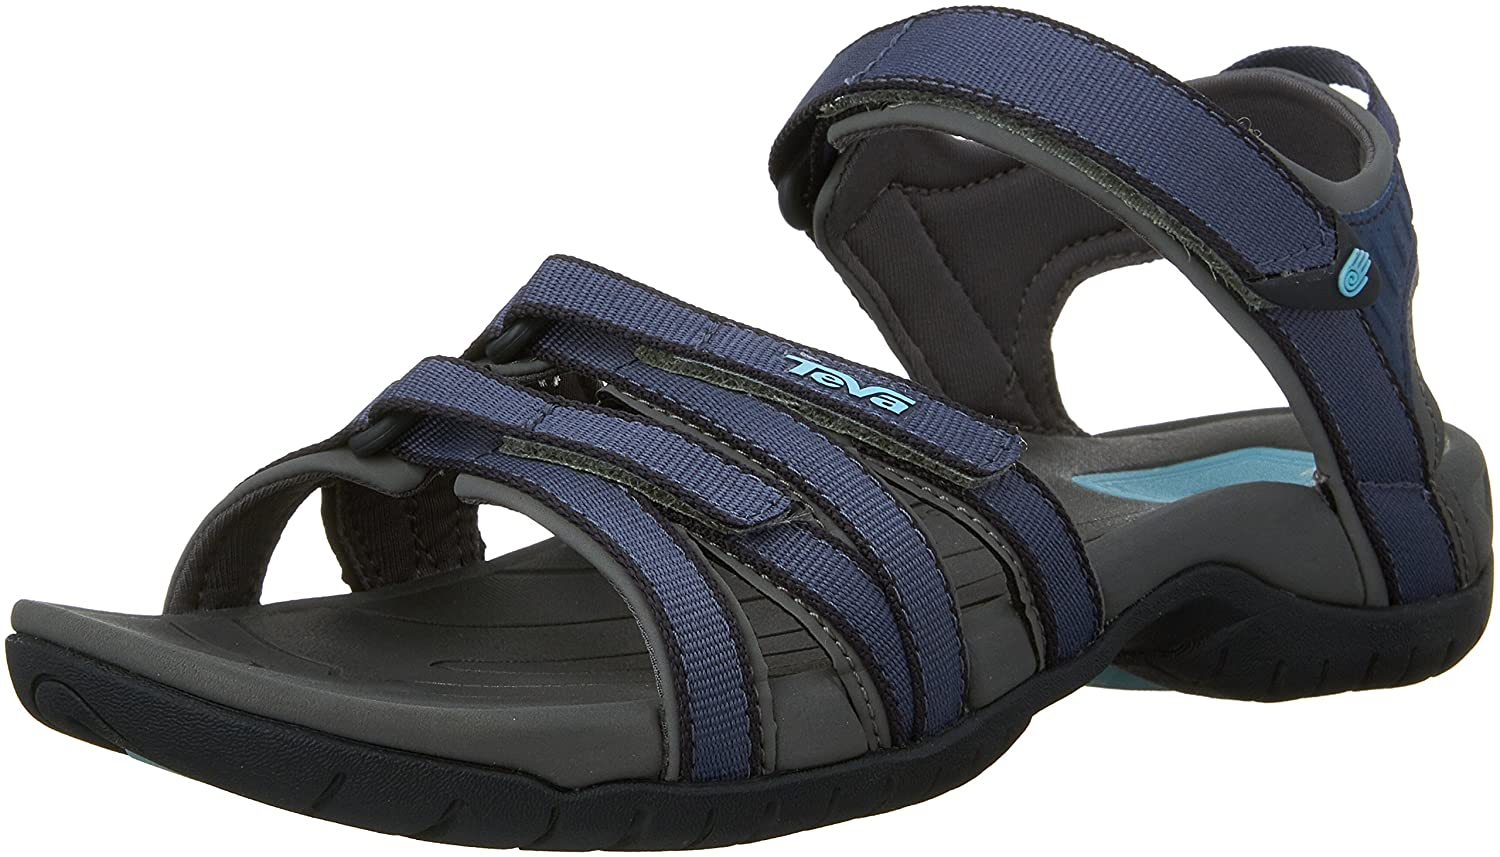 Teva Women's Tirra Athletic Sandal B00H45SZXS 7.5 B(M) US|Bering Sea